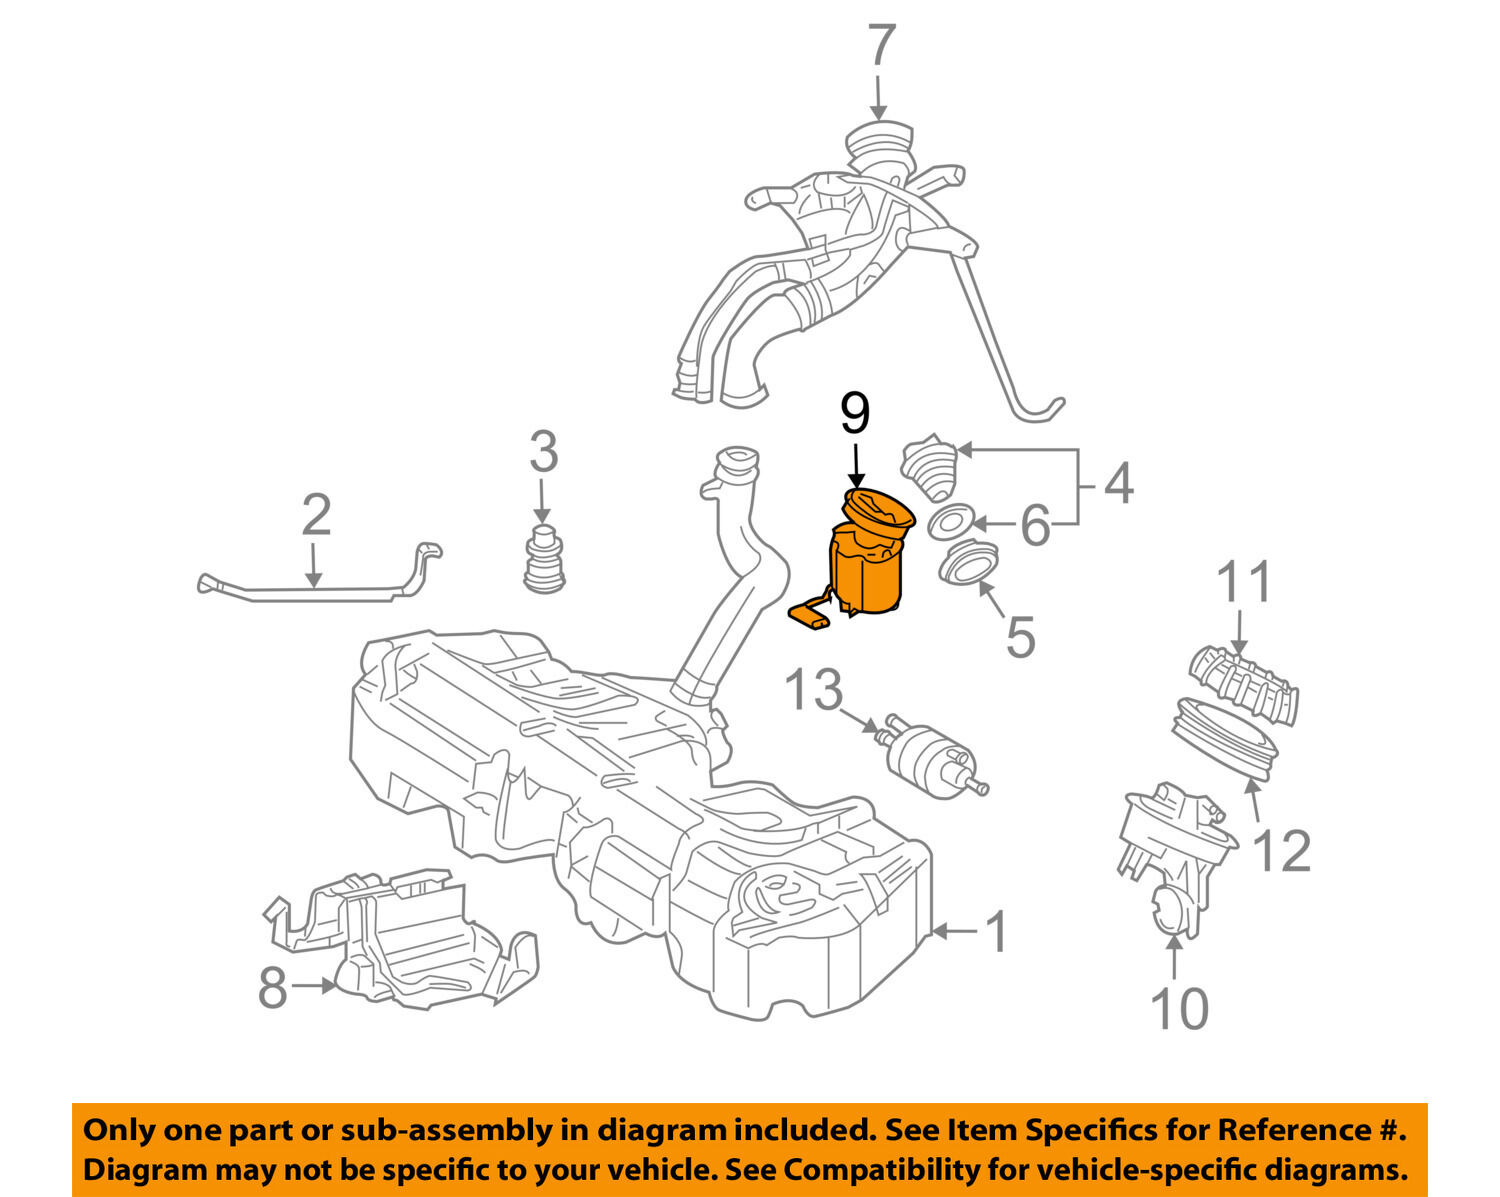 Mercedes Oem 02 05 C320 Fuel Pump 2034702394 25560 Picclick Engine Diagram 1 Of 2only Available